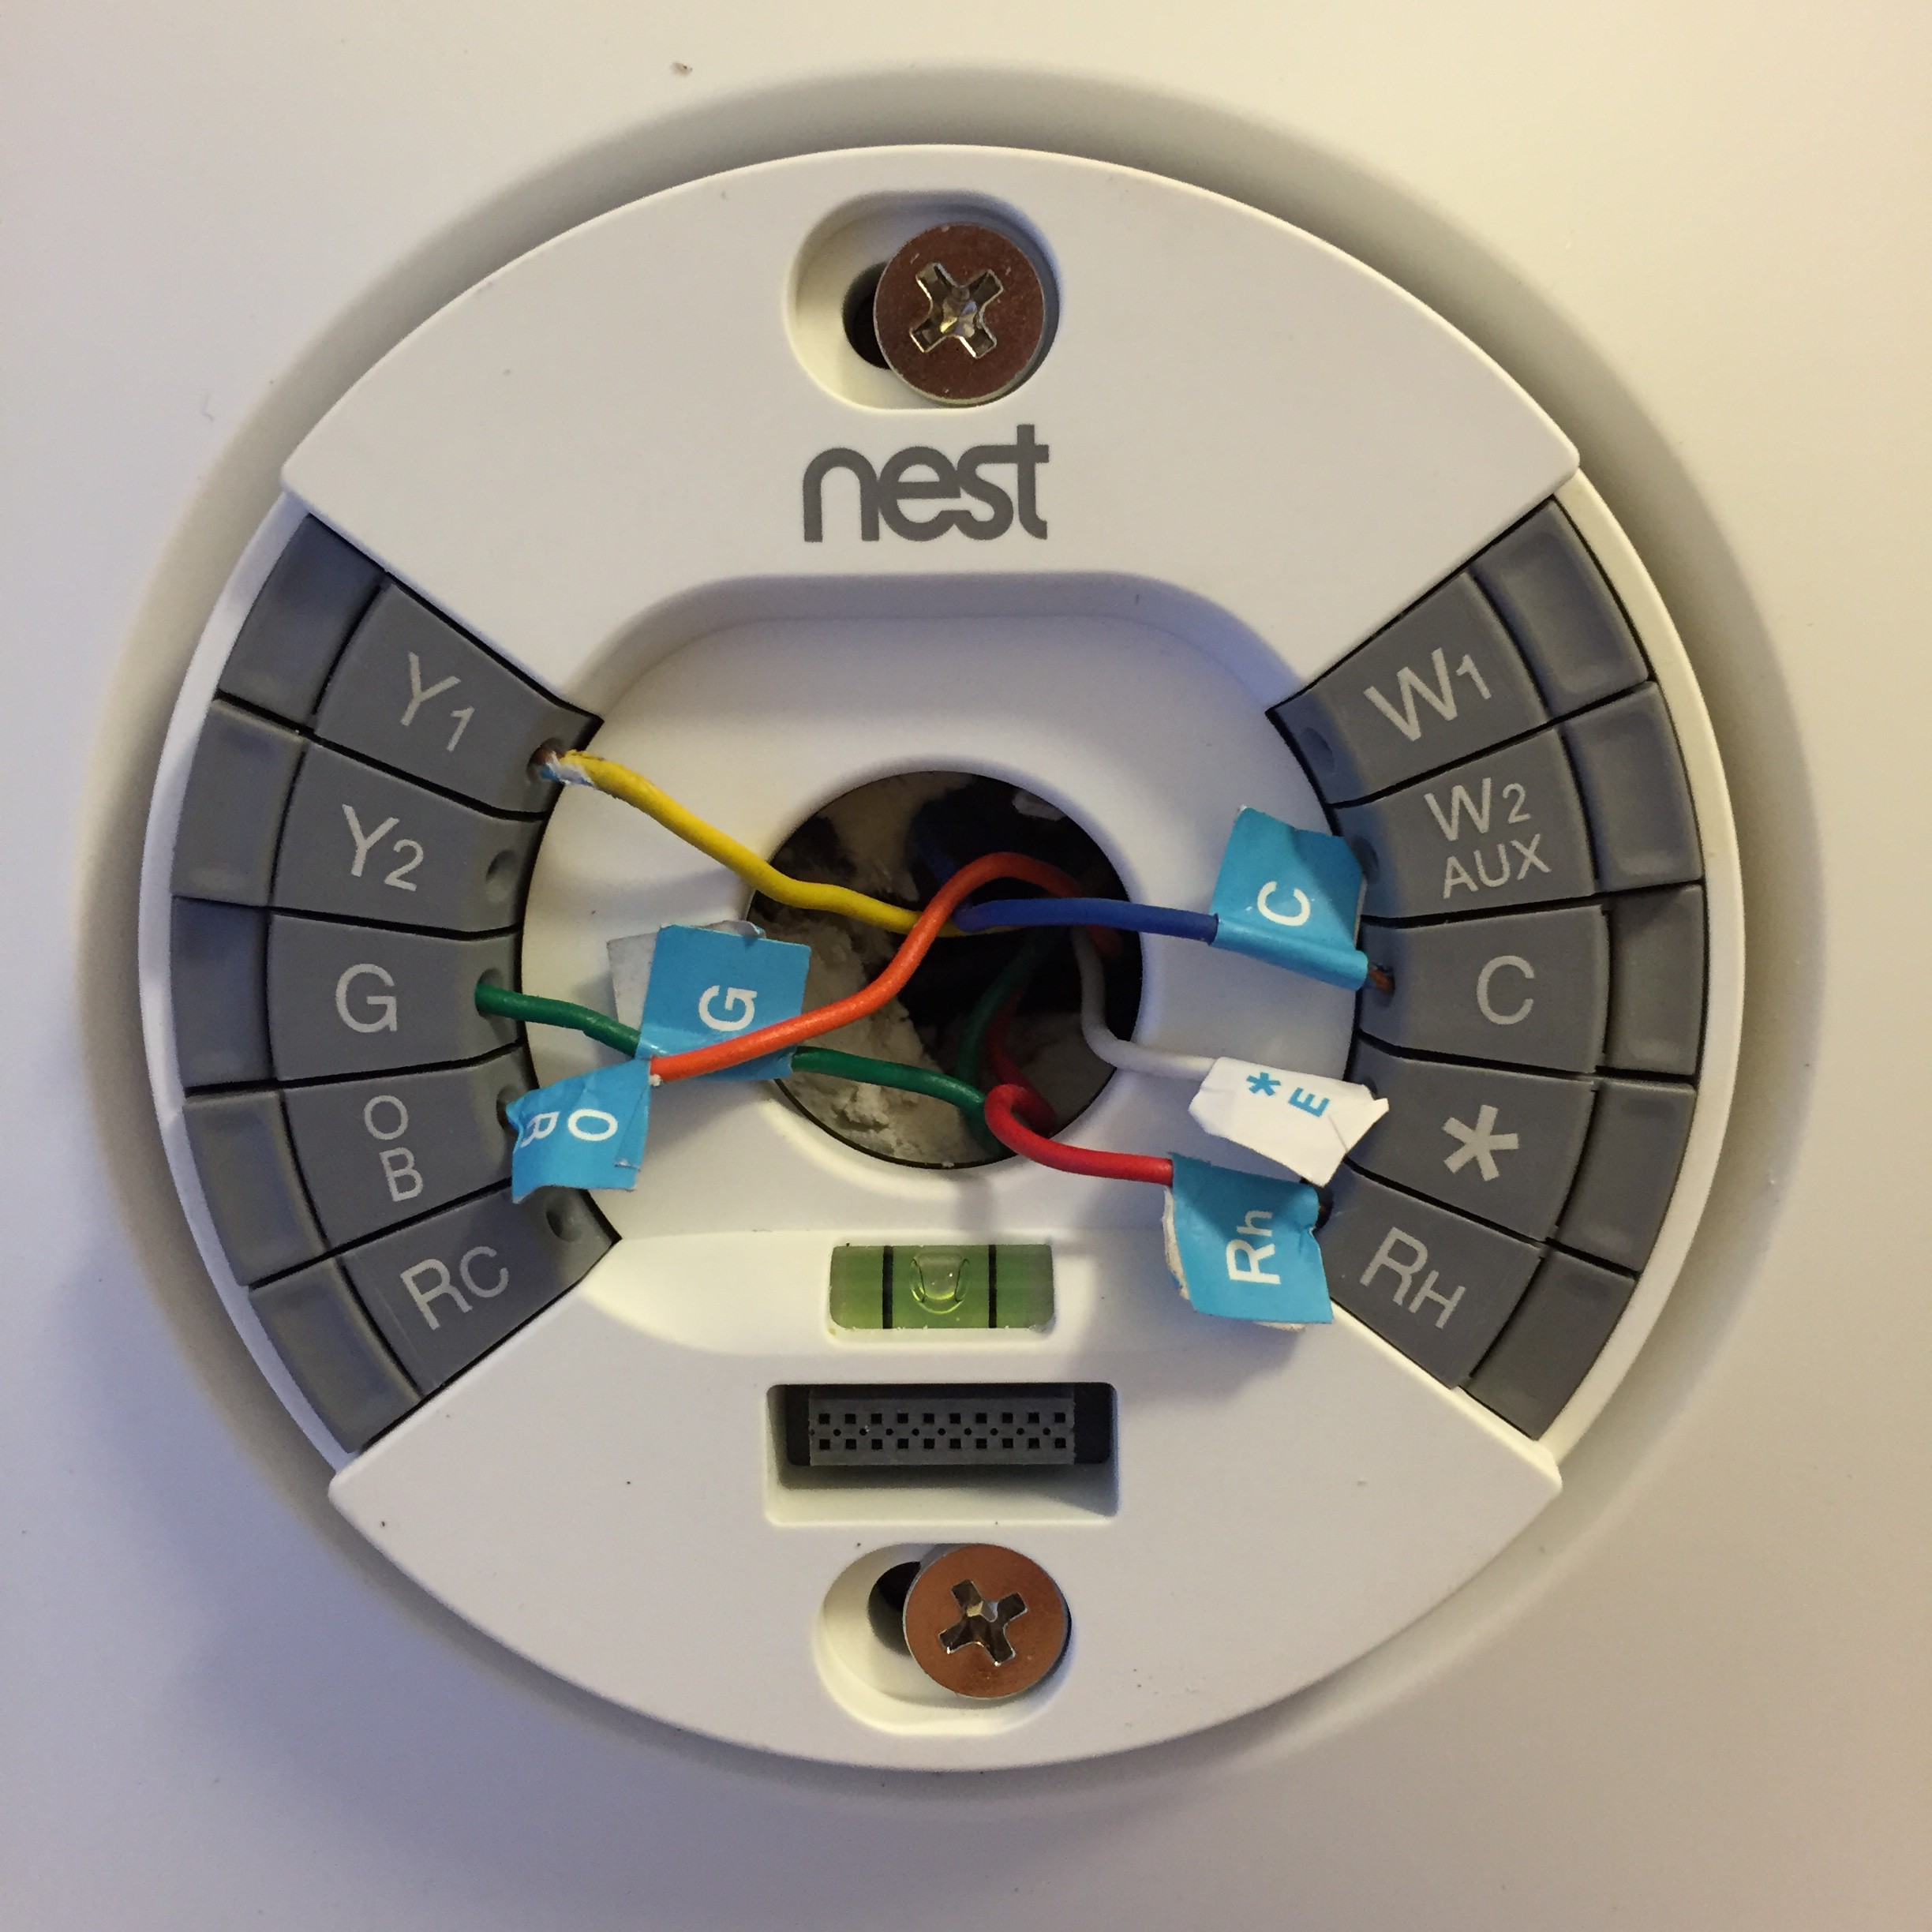 NEST Back Plate e1433878189266 the self learning nest thermostat comes to the sauser home! nest thermostat heat pump wiring diagram at gsmportal.co